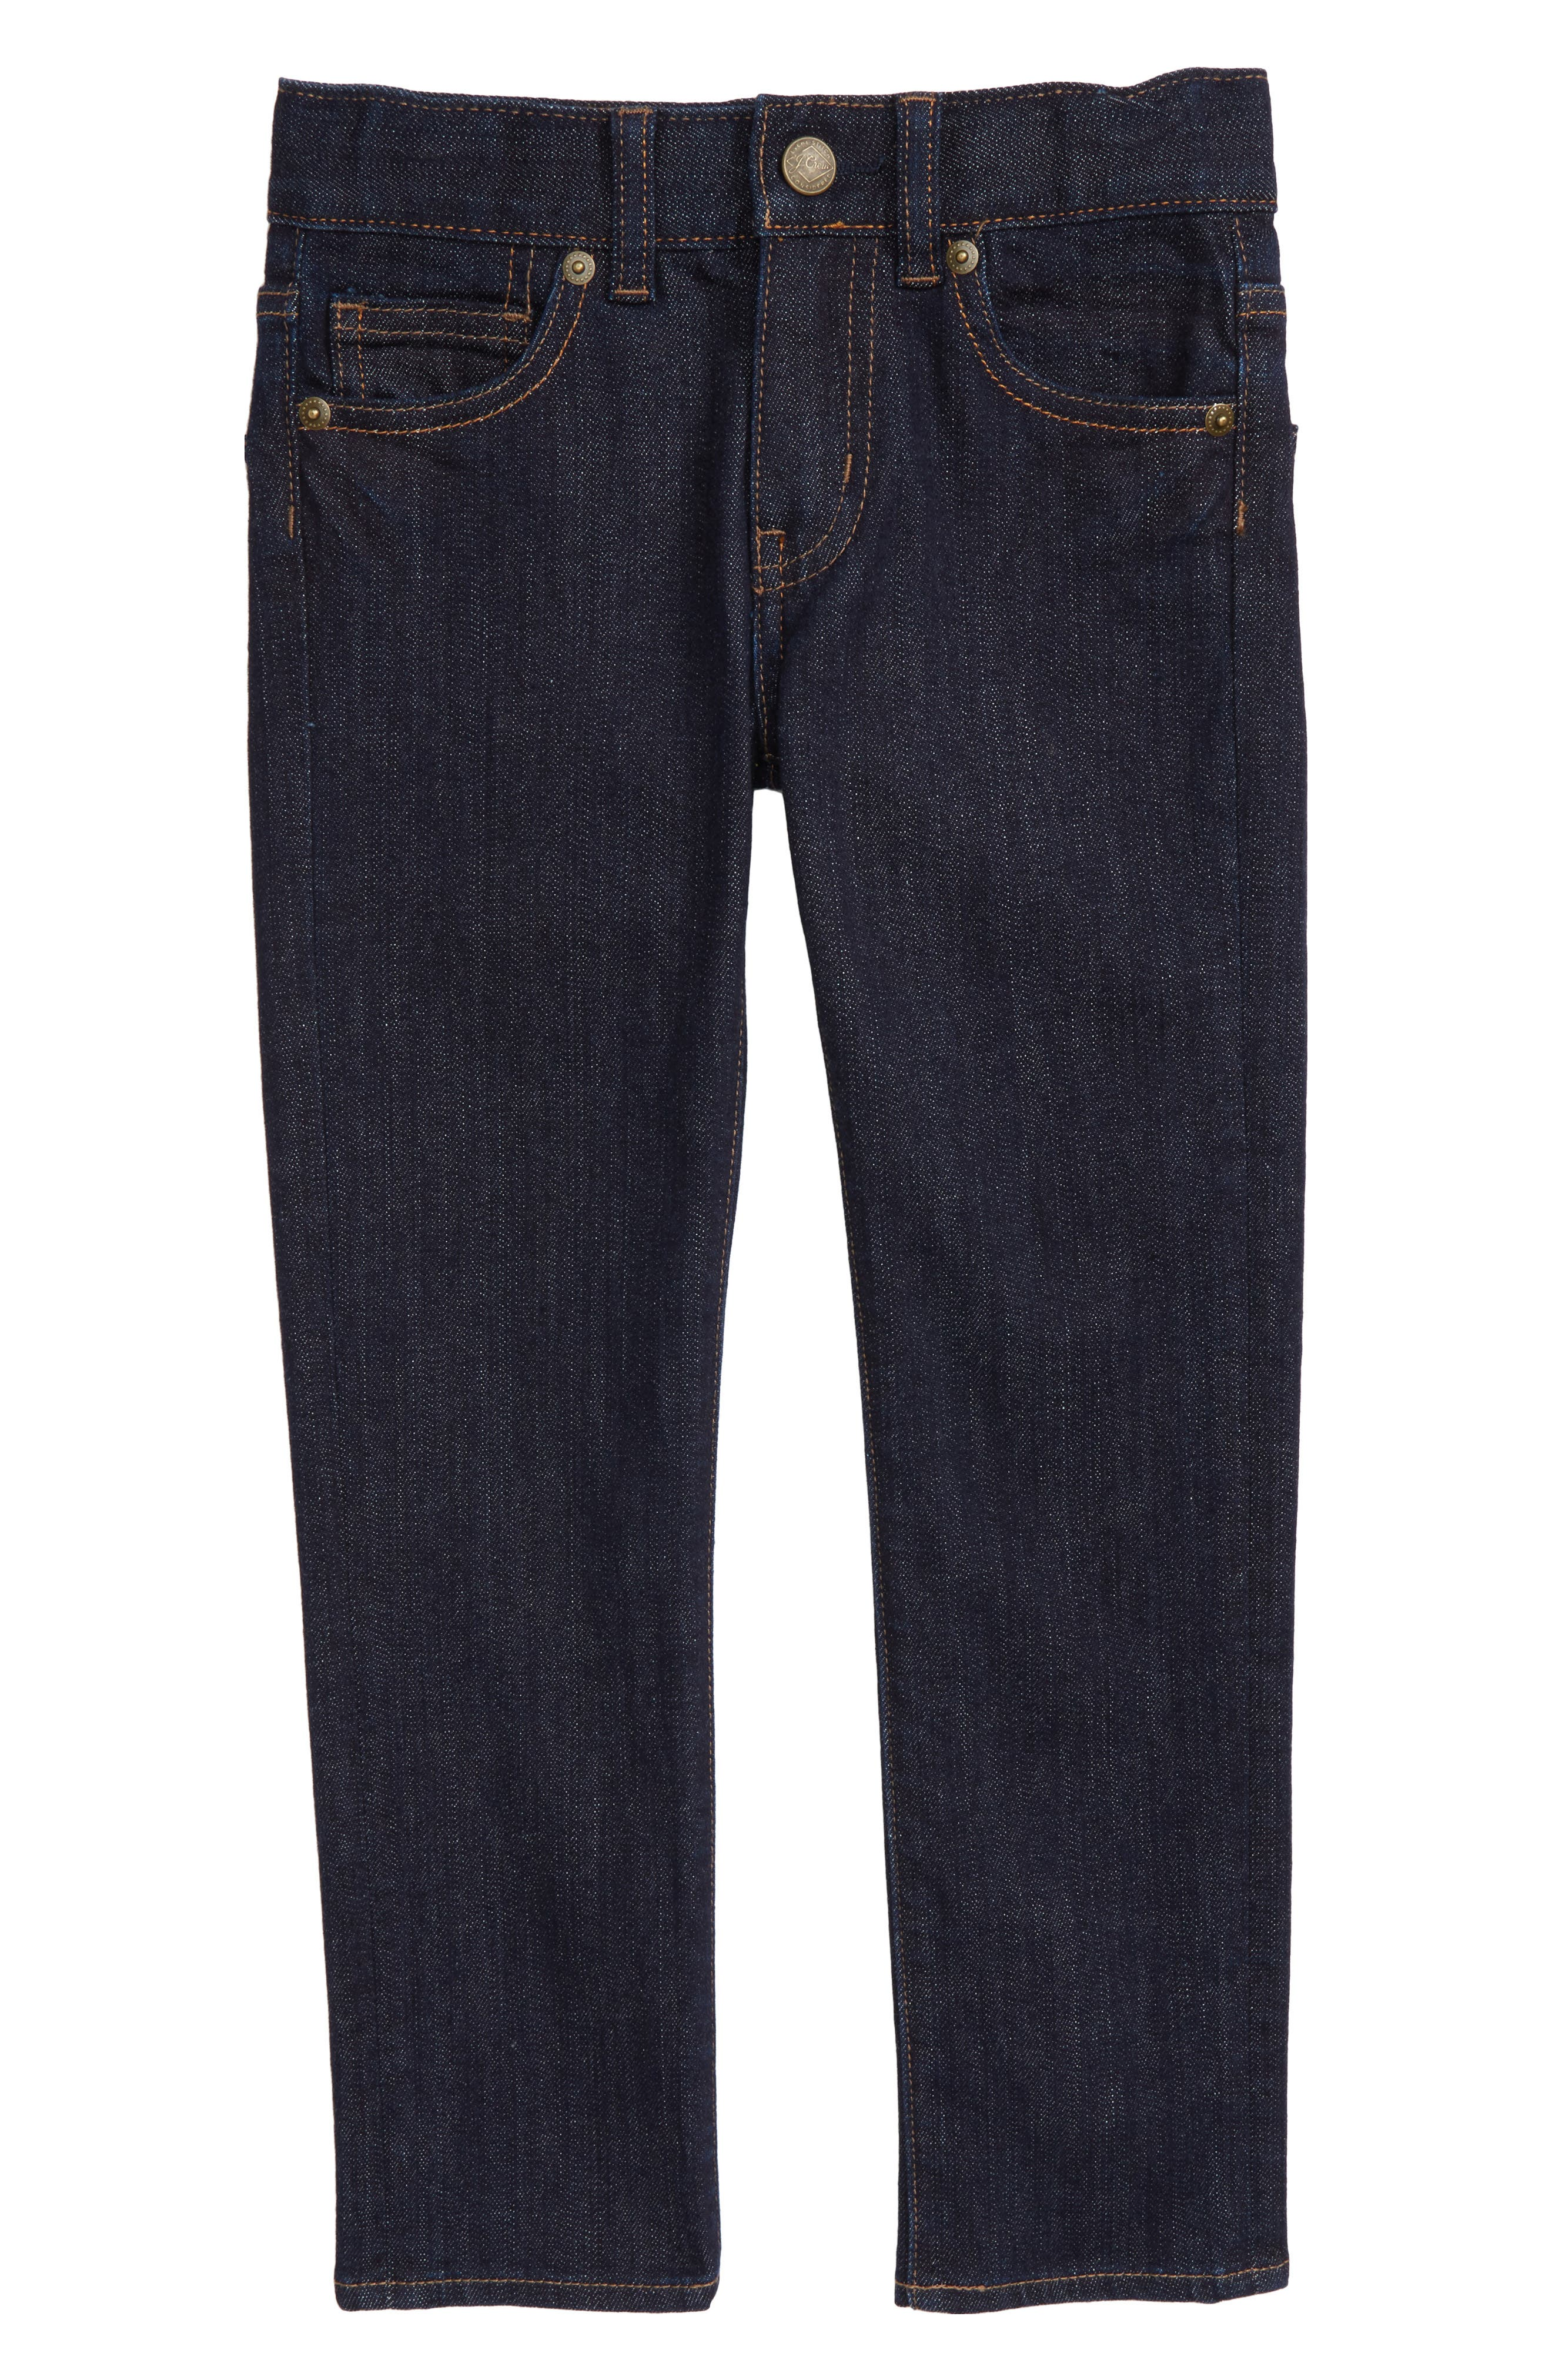 Main Image - crewcuts by J.Crew Slim Fit Jeans (Toddler Boys, Little Boys & Big Boys)